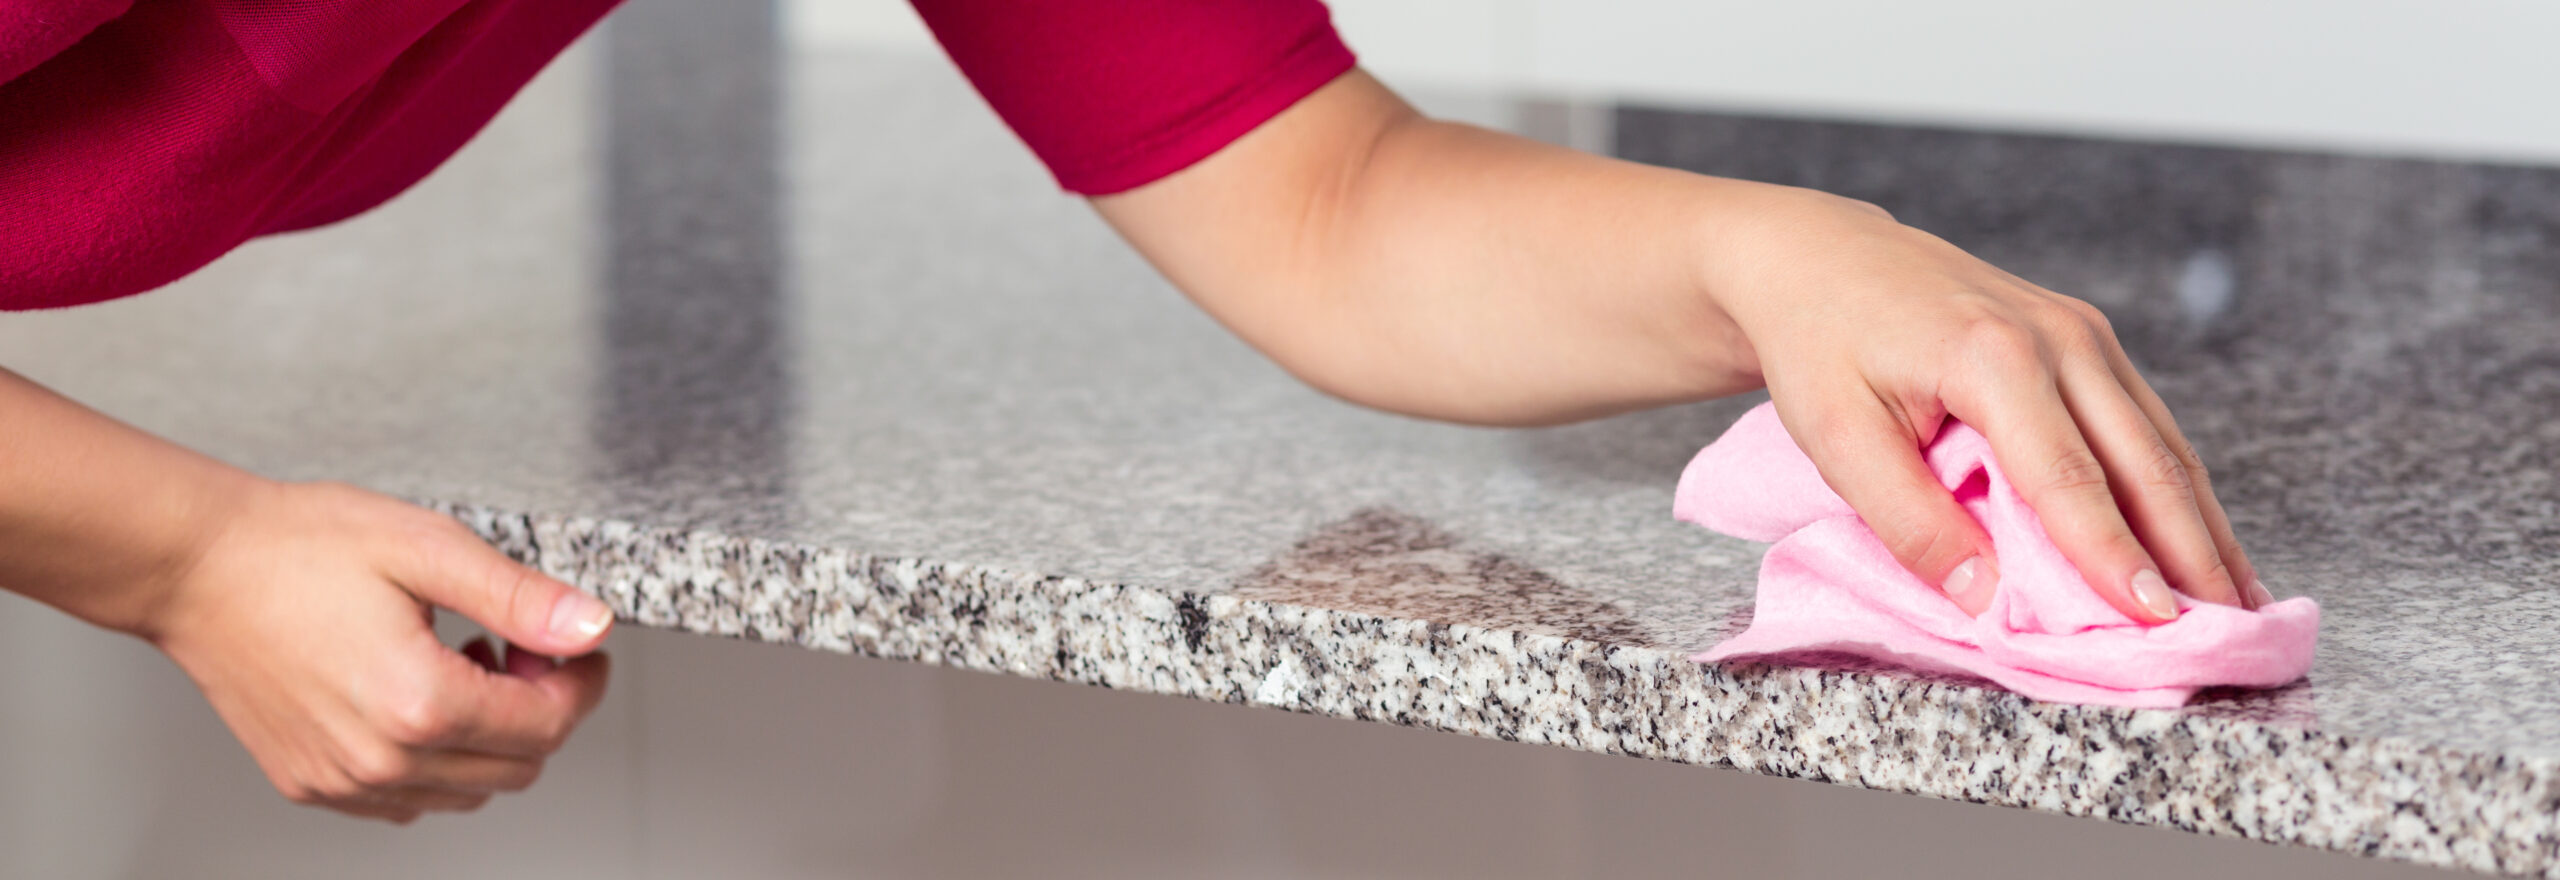 Cleaning a counter